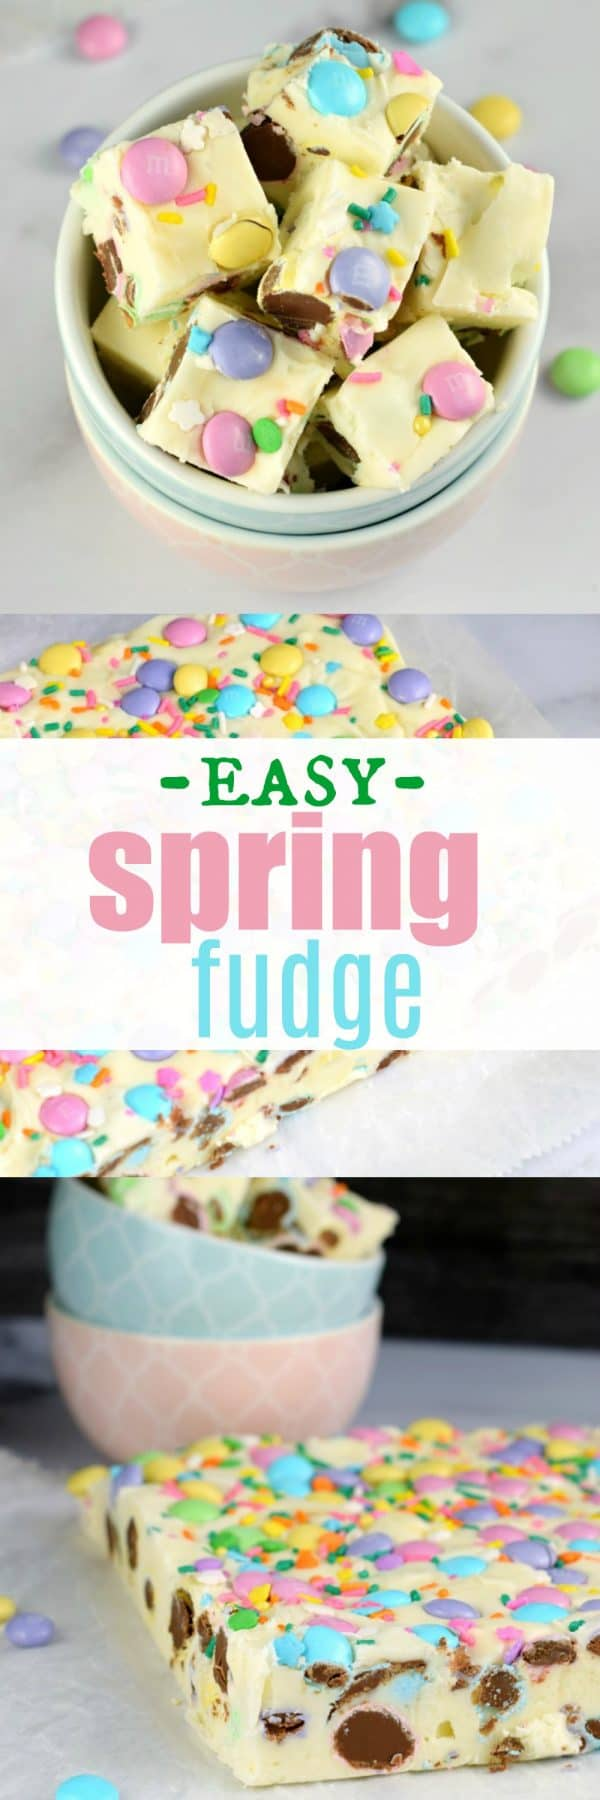 No matter the Spring holiday, this easy Easter Fudge recipe is perfect. Vanilla Fudge with pastel candies and sprinkles! #holidays #candy #fudge #easter #homemadecandy